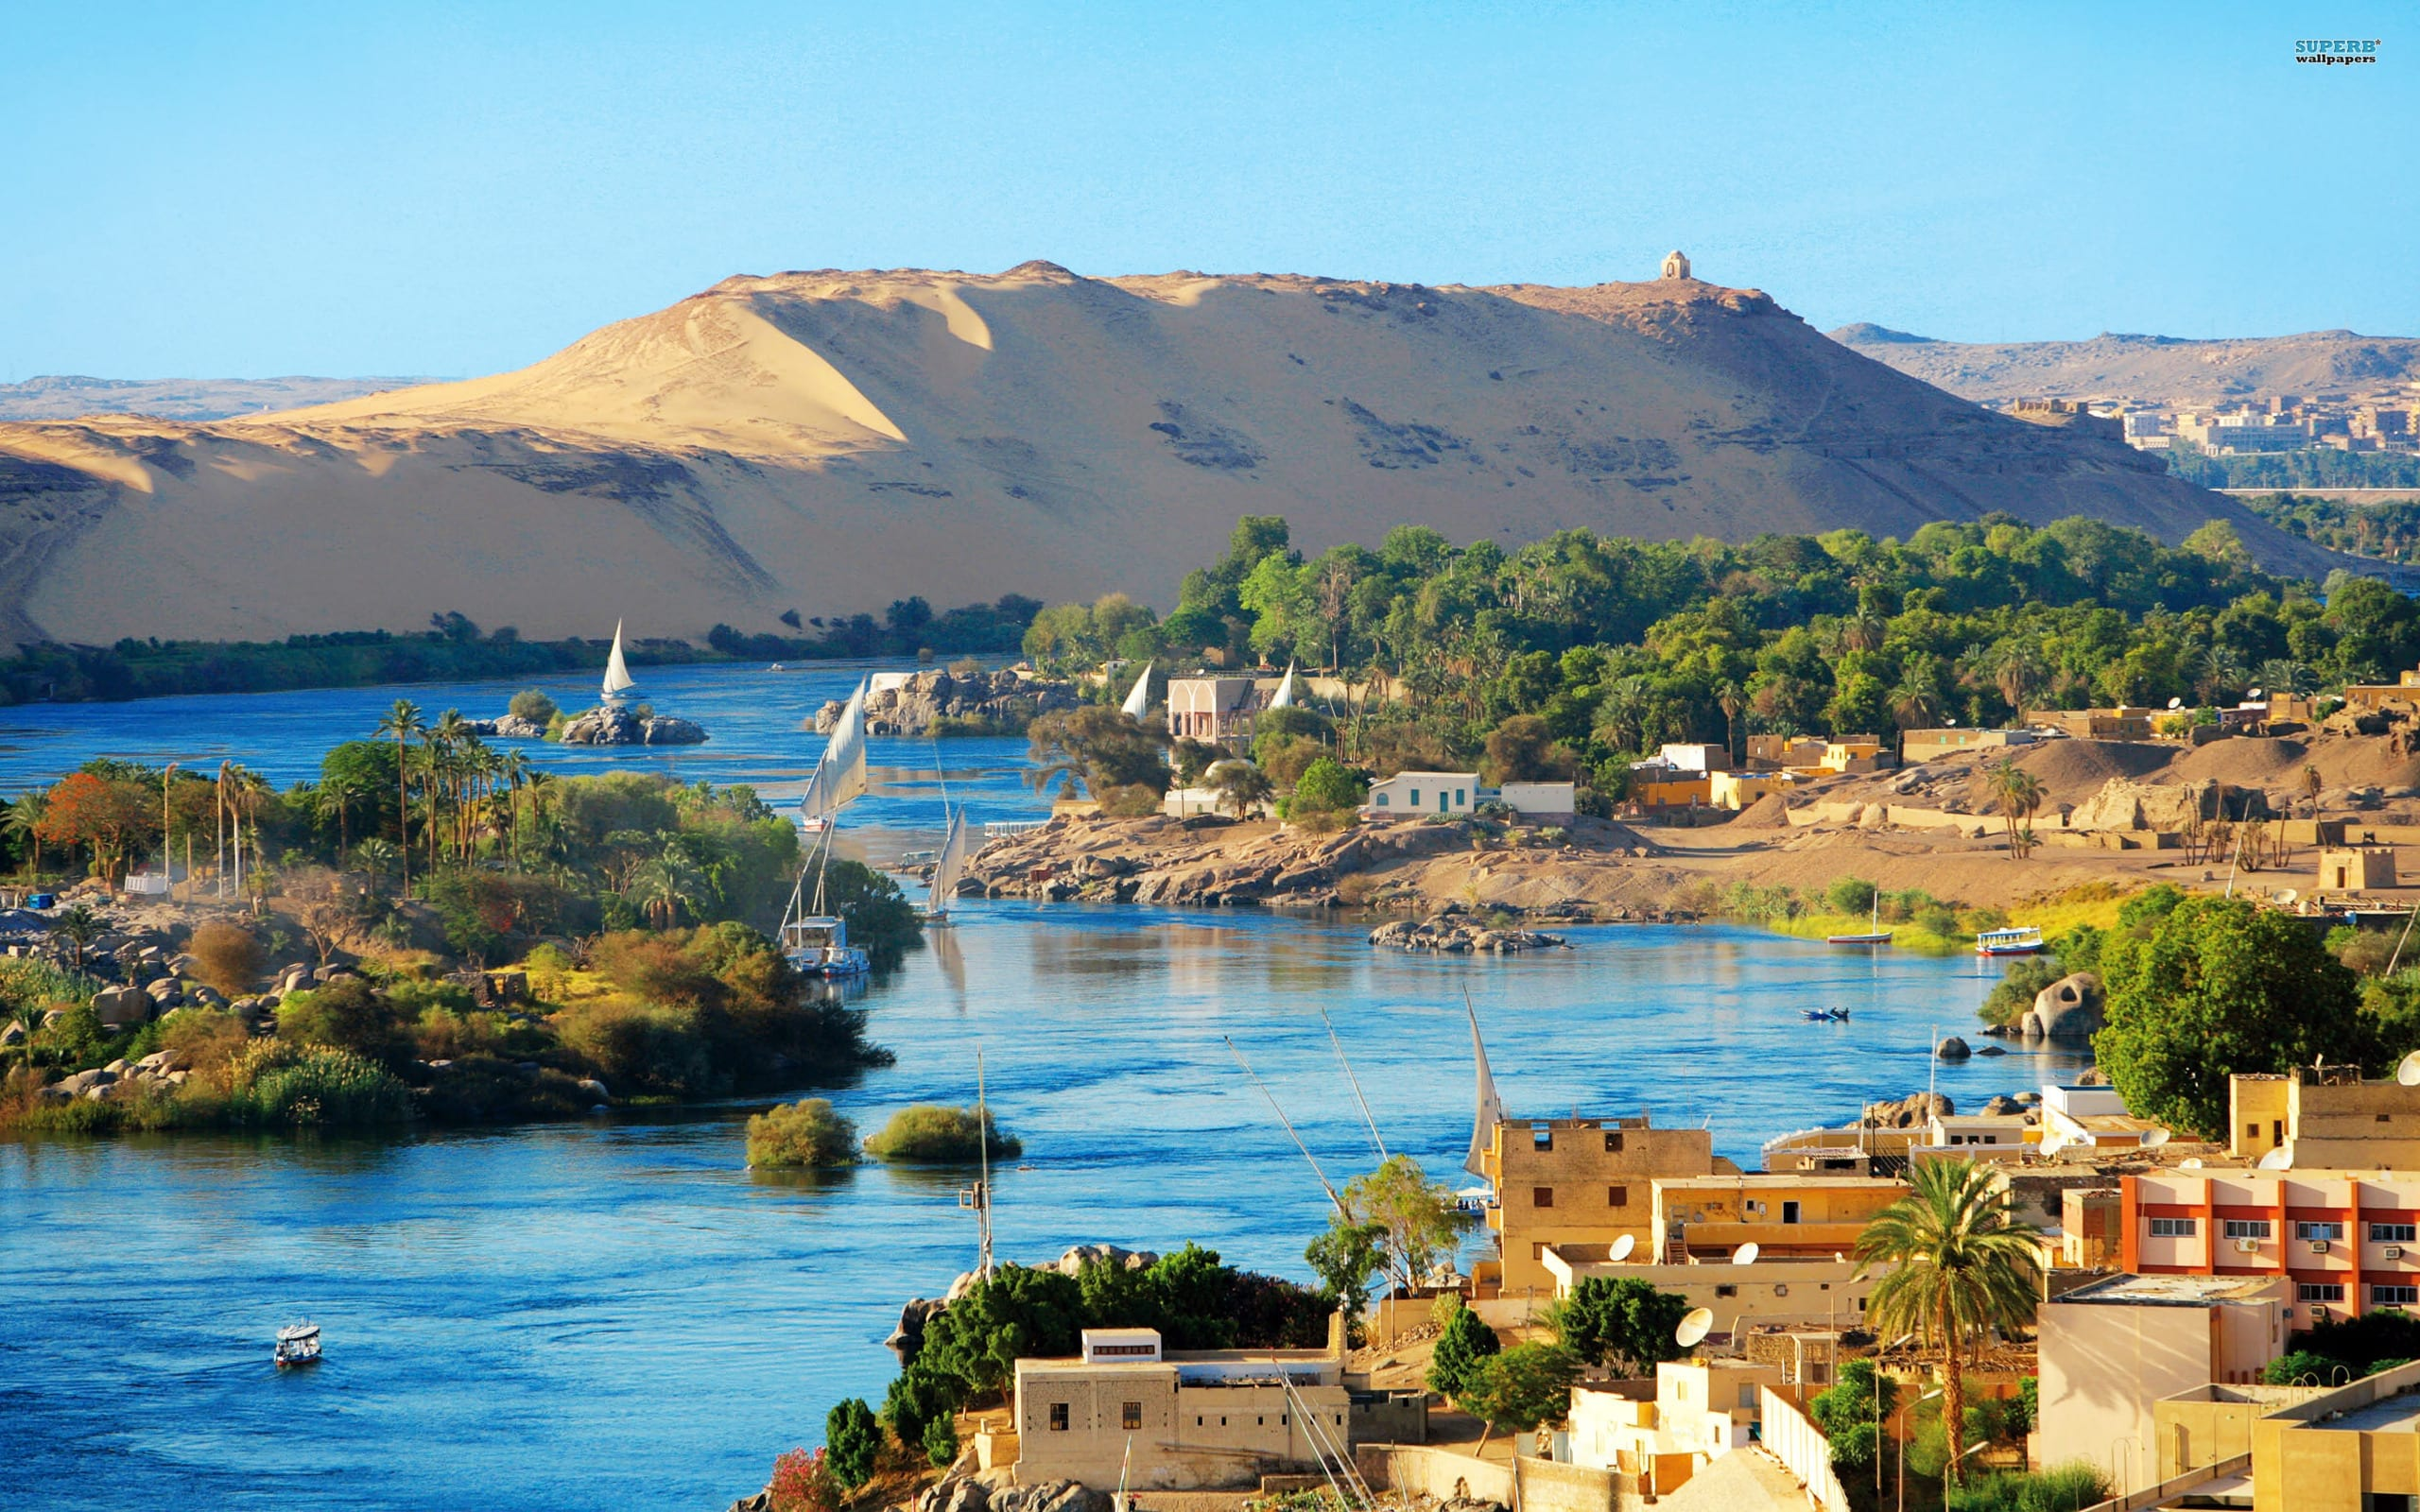 Aerial of the Nile in Egypt